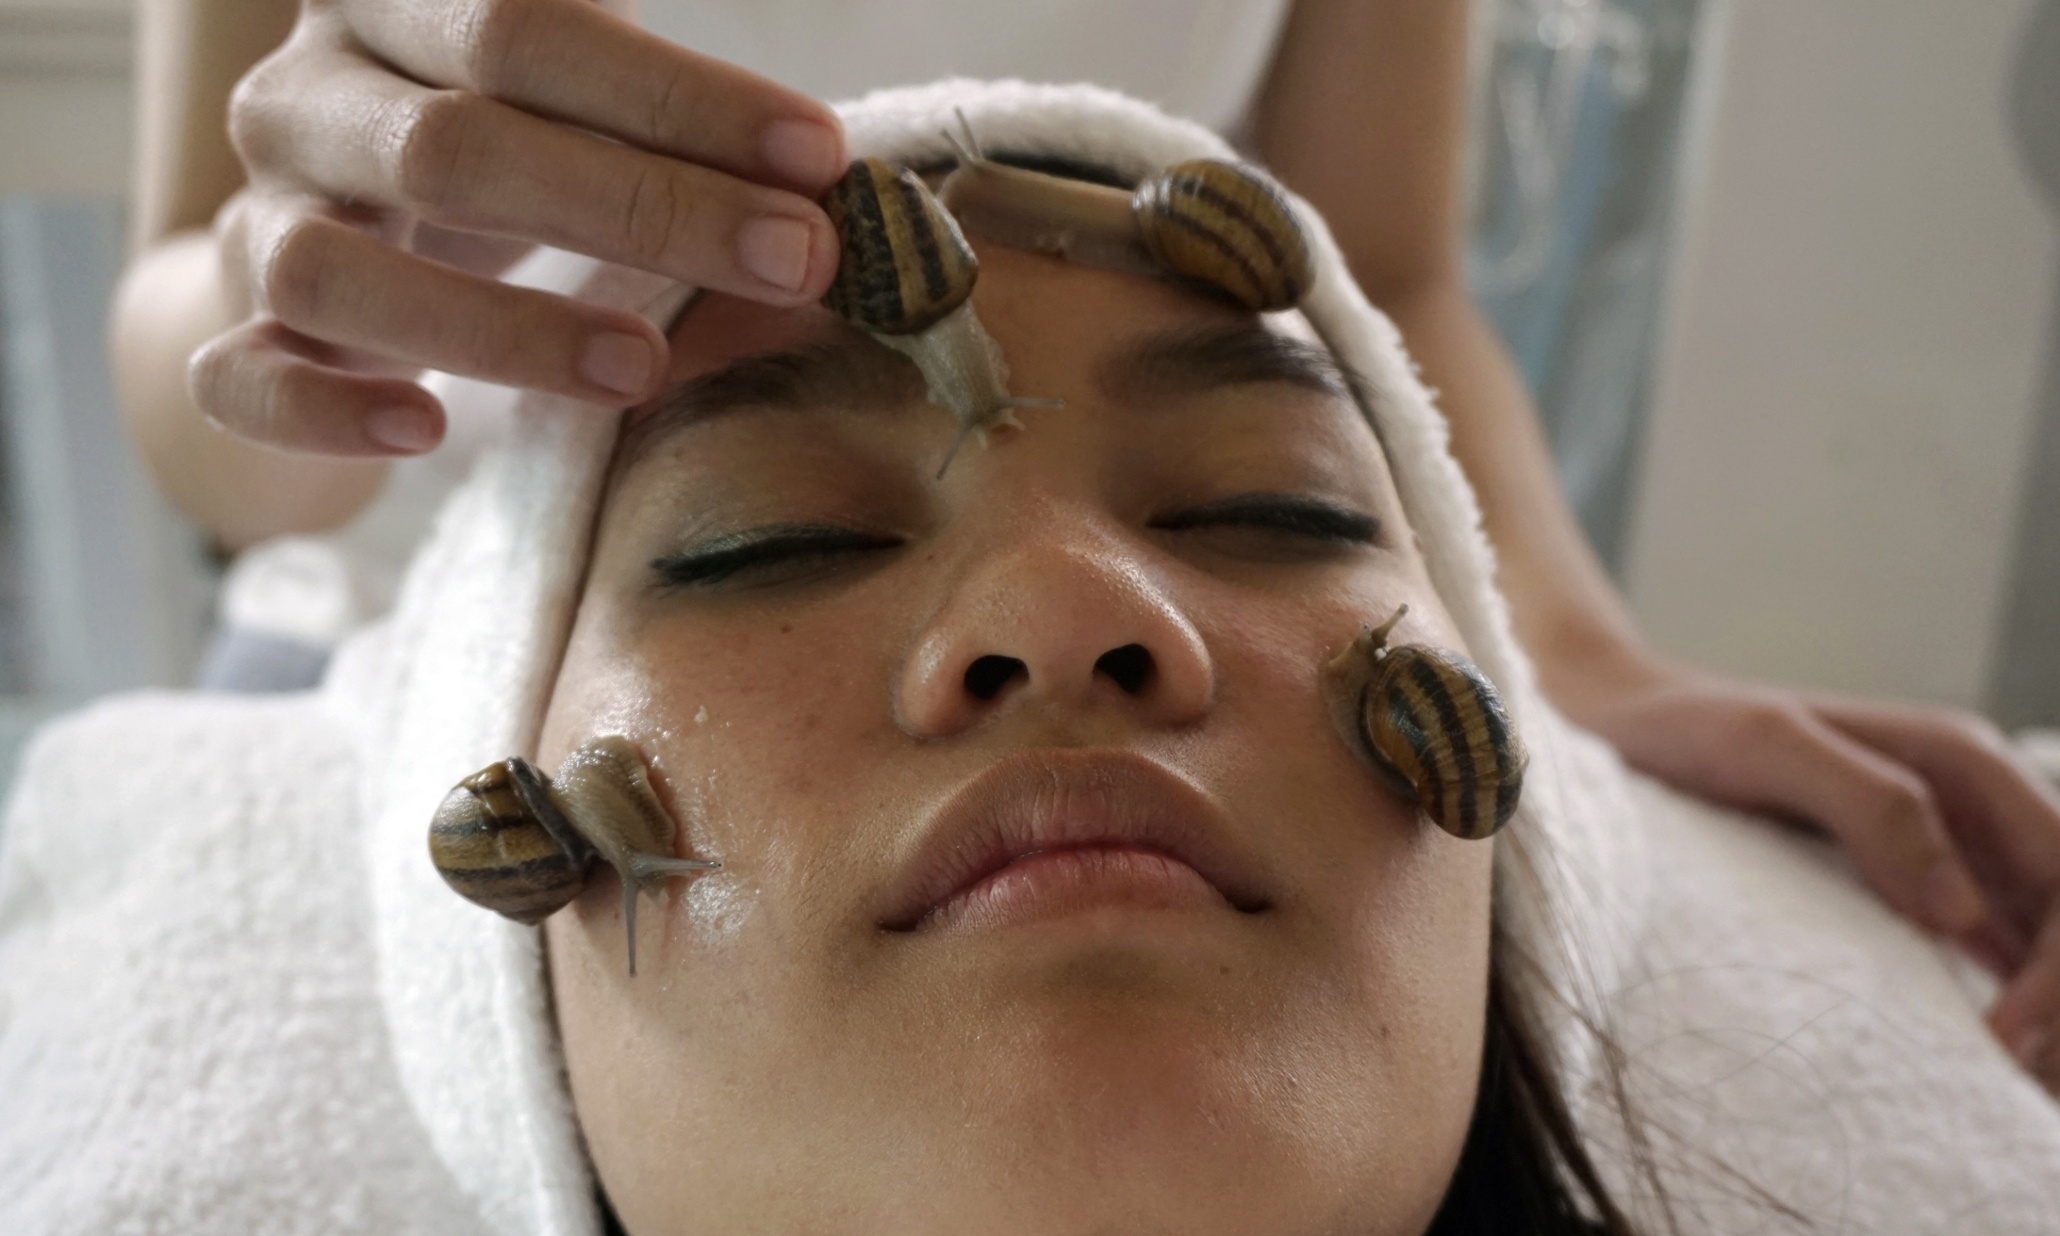 In this photo taken Monday, Jan. 19, 2015, a customer receives a beauty treatment with snails at a snail farm in Chiang Mai province, northern of Thailand. This latest addition to the global beauty and wellness craze - snail facials - should surface in the hills of the area is only natural. This Southeast Asian country ranks among the world's top spa destinations, with massage treatments of every description offered around just about every corner. (AP Photo/Denis Gray)